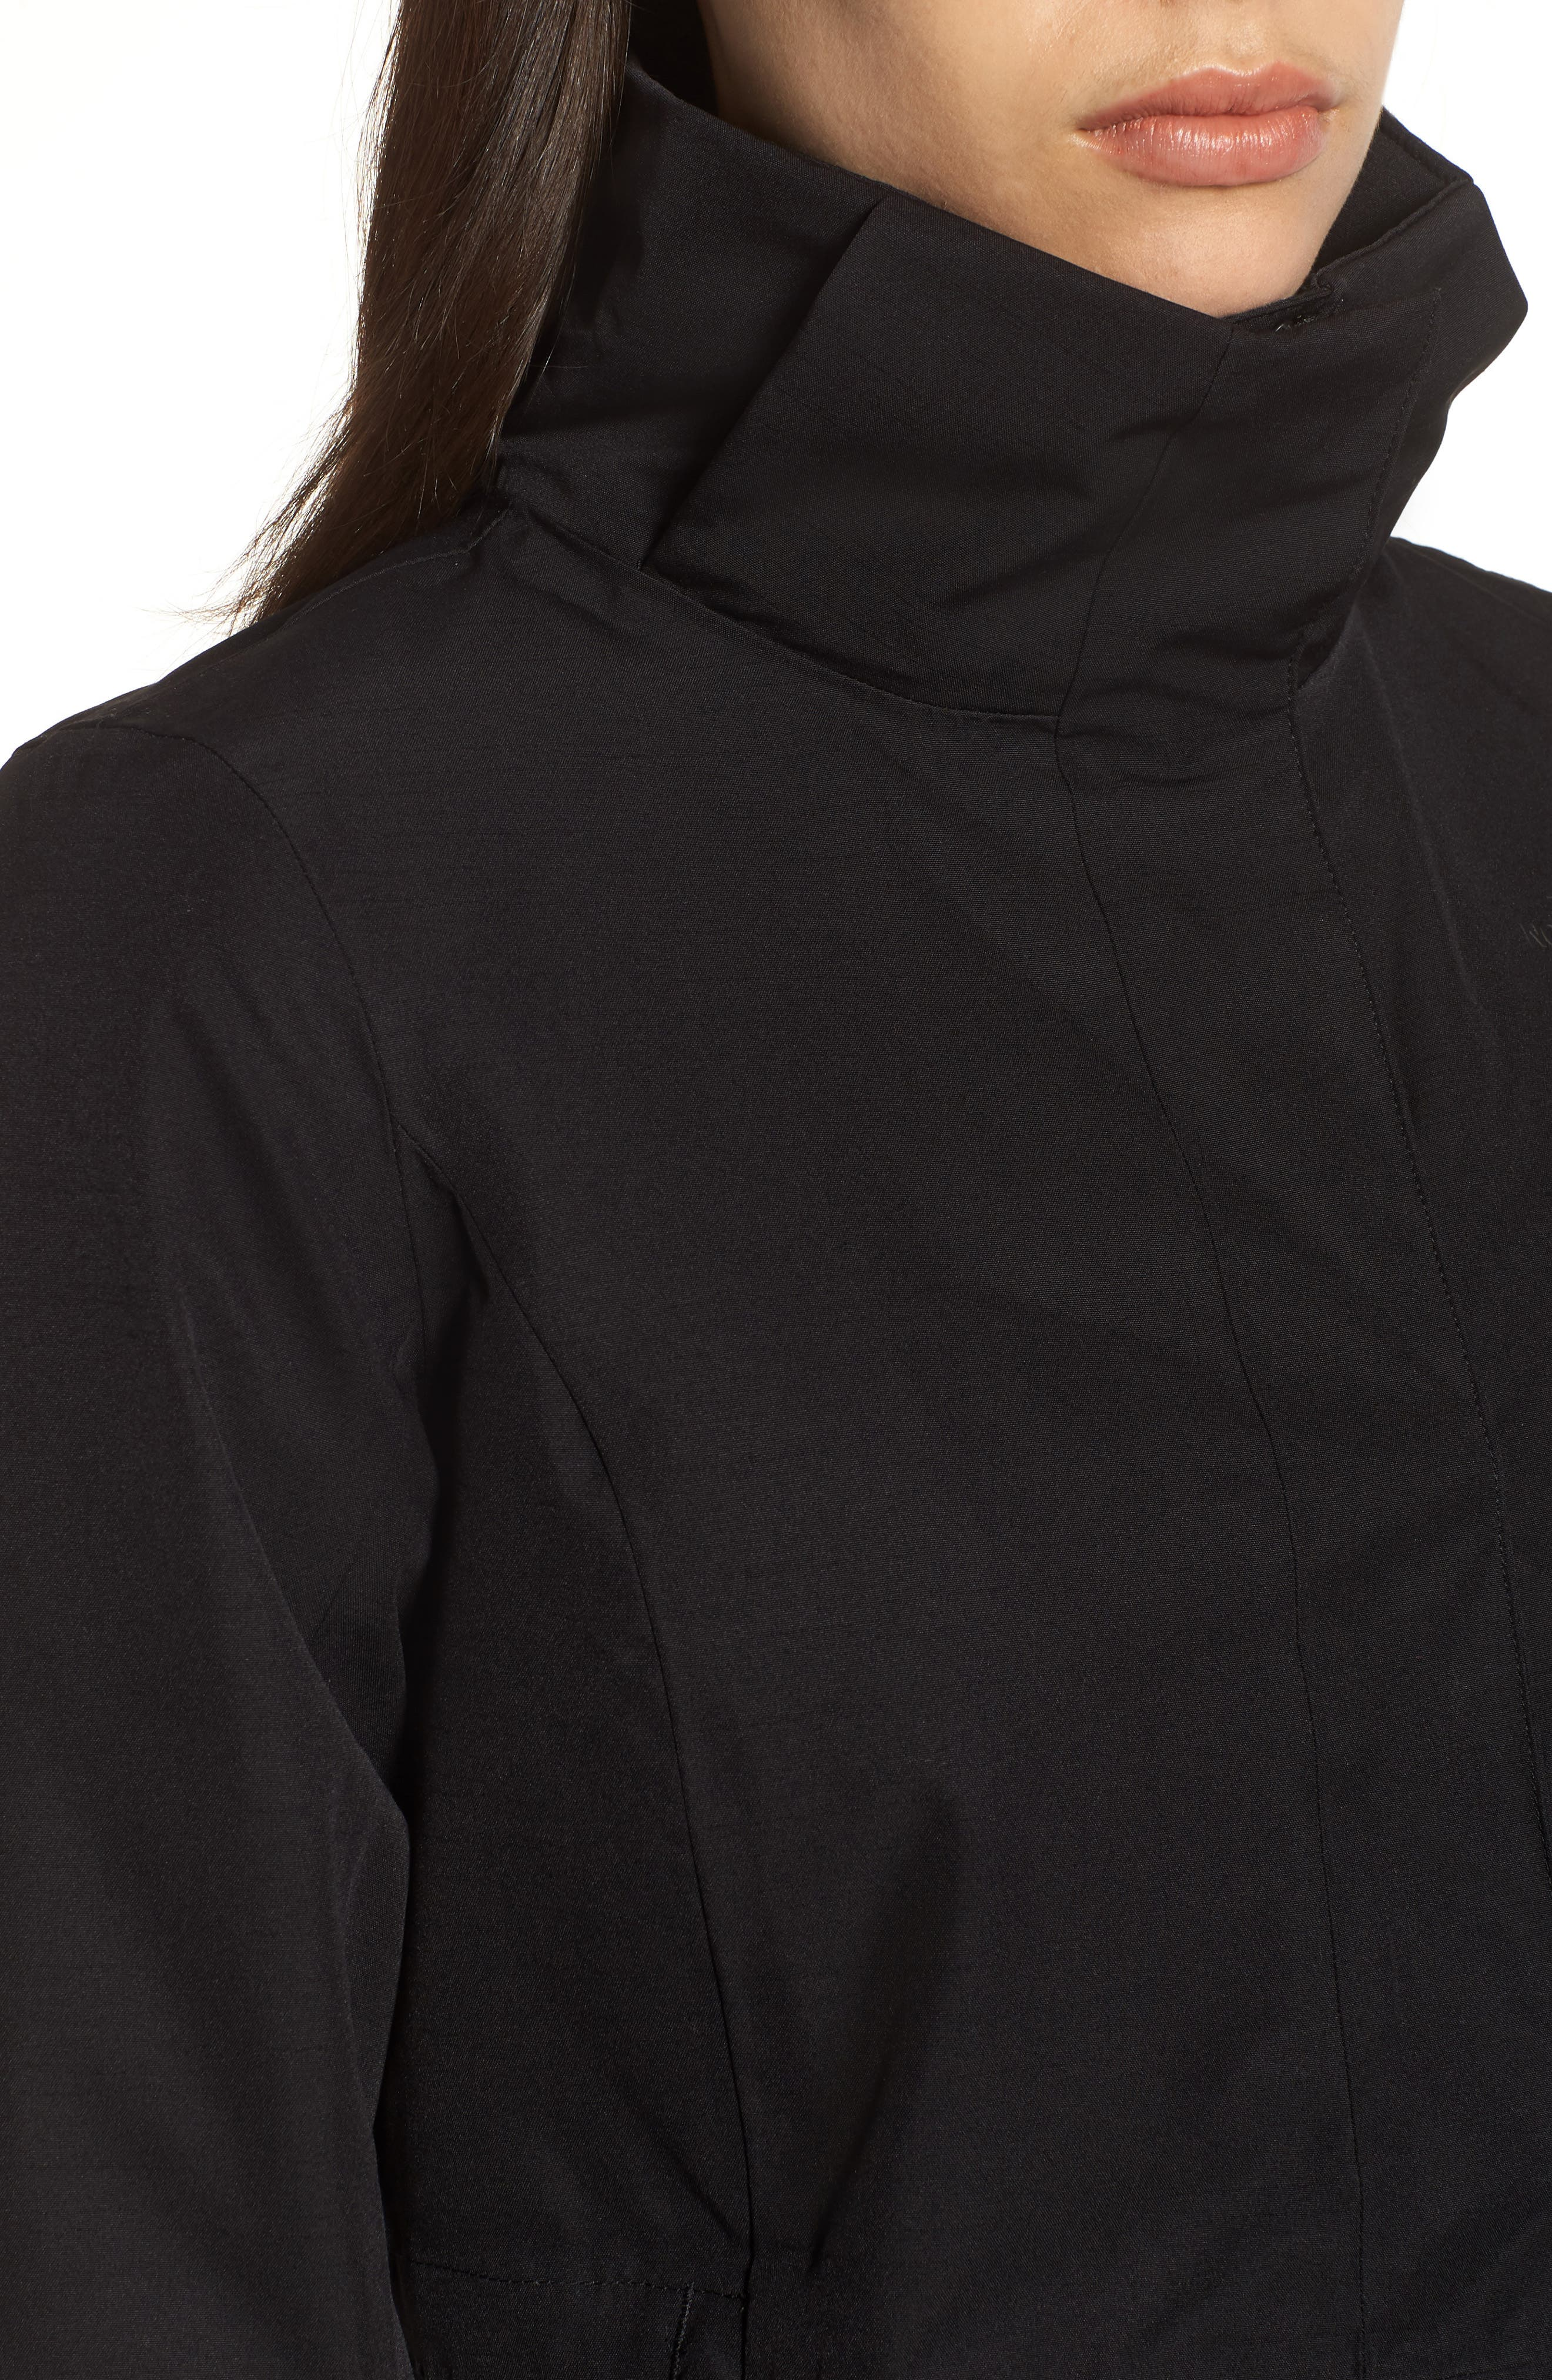 THE NORTH FACE,                             Ancha II Hooded Waterproof Parka,                             Alternate thumbnail 5, color,                             001